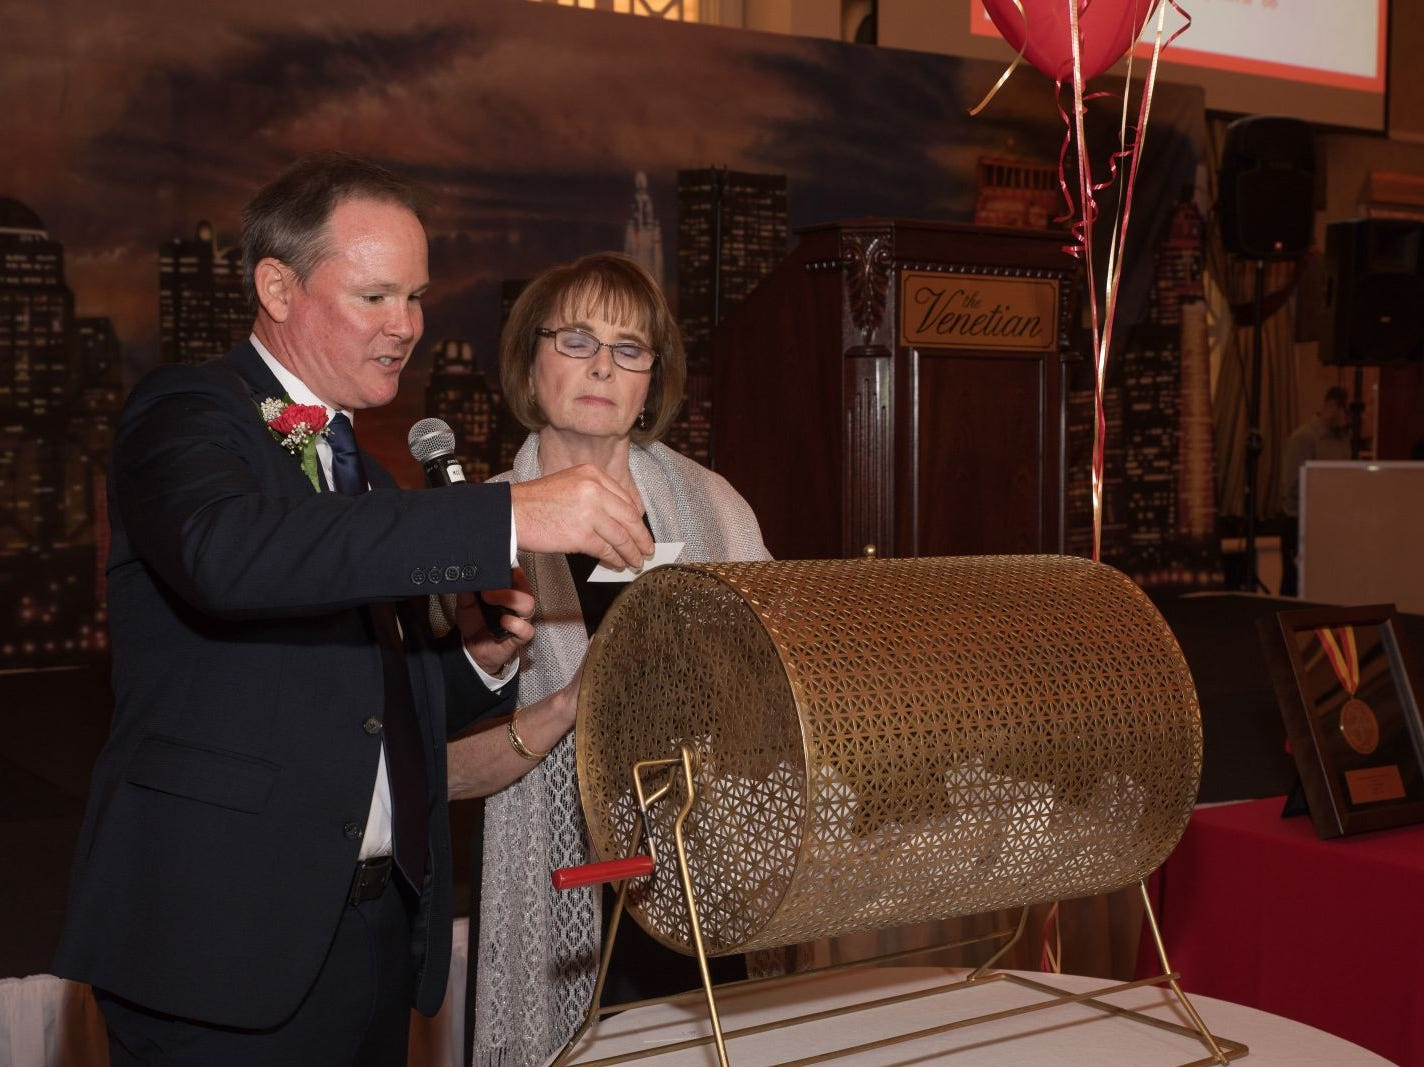 Dr. Brian Murphy and Regina Radoslovich announce winners. Bergen Catholic High School celebrates their 2018 Crusader Gala at The Venetian in Garfield. 11/16/2018